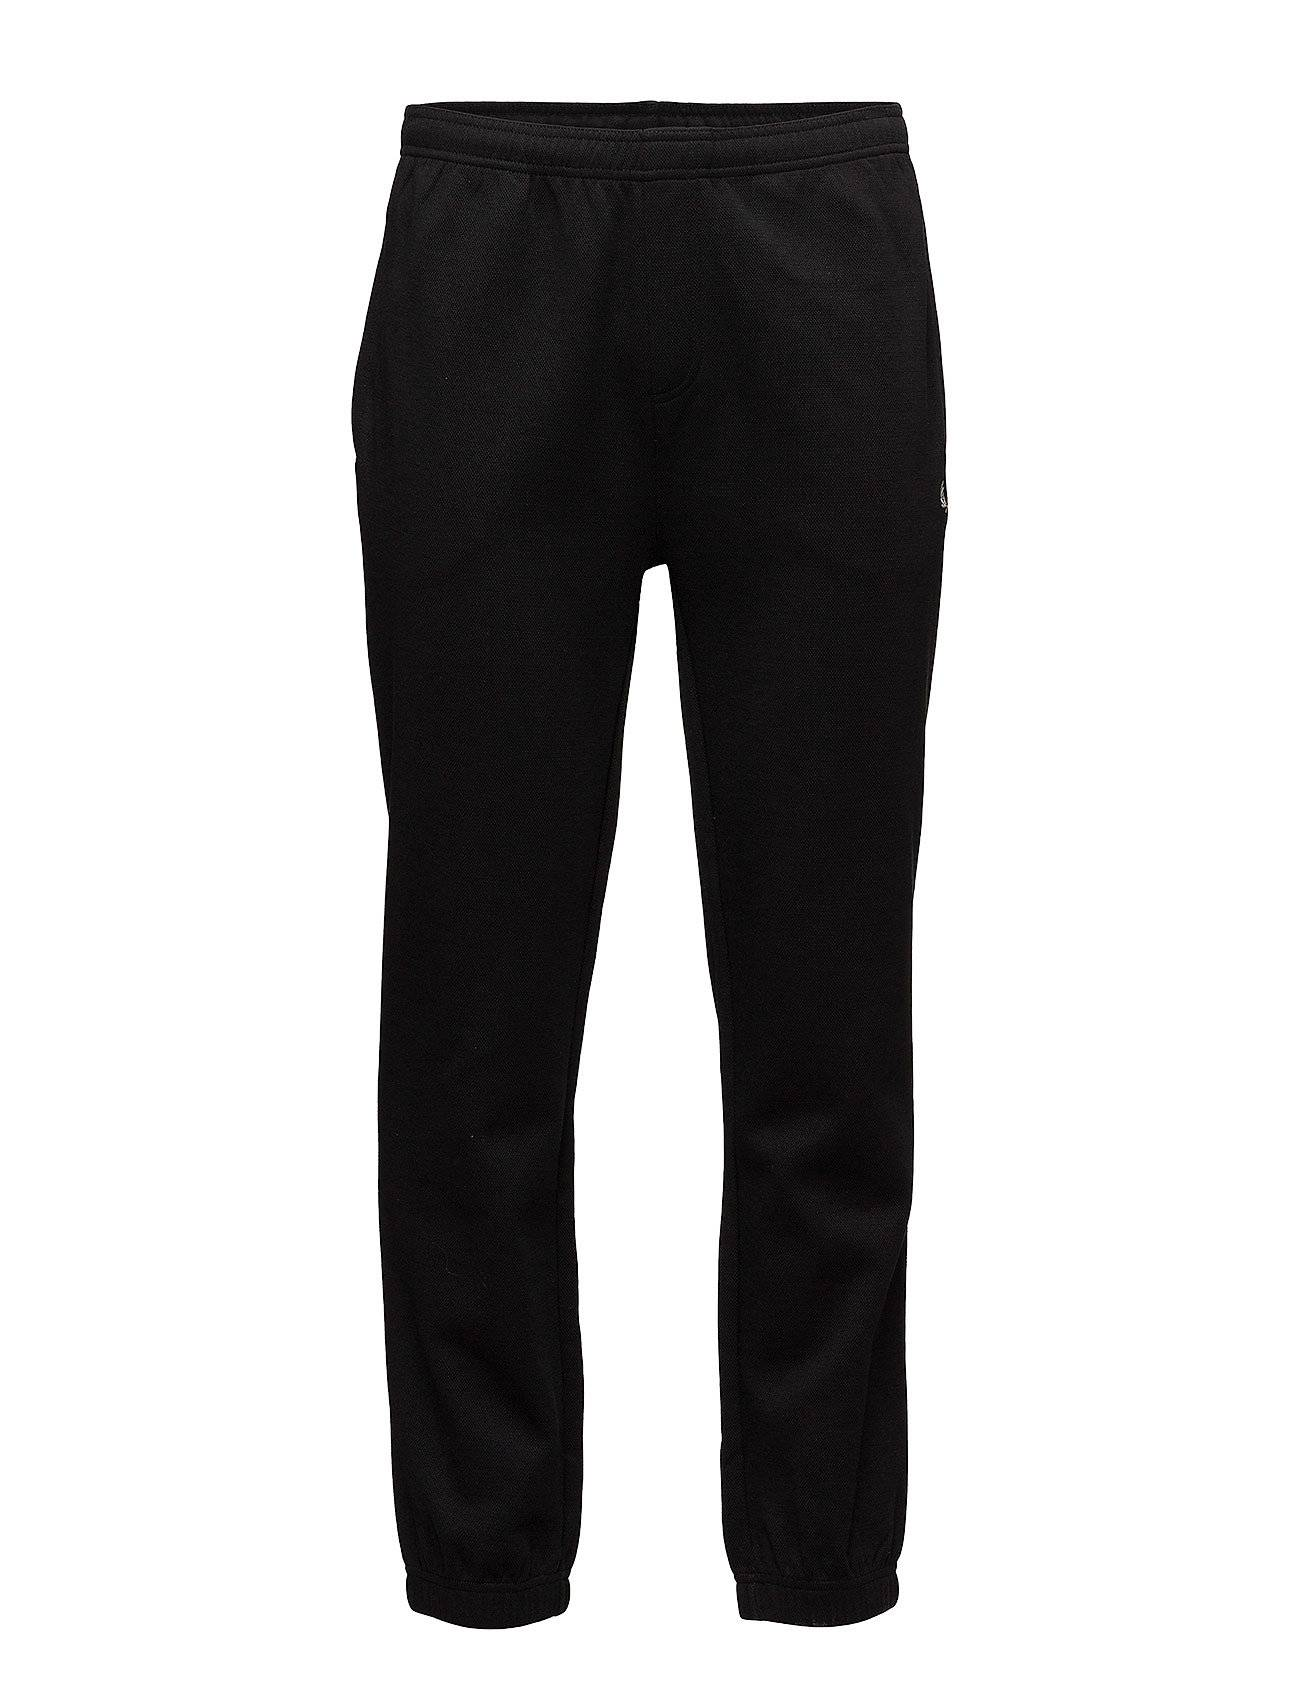 Fred Perry Pique Track Pant